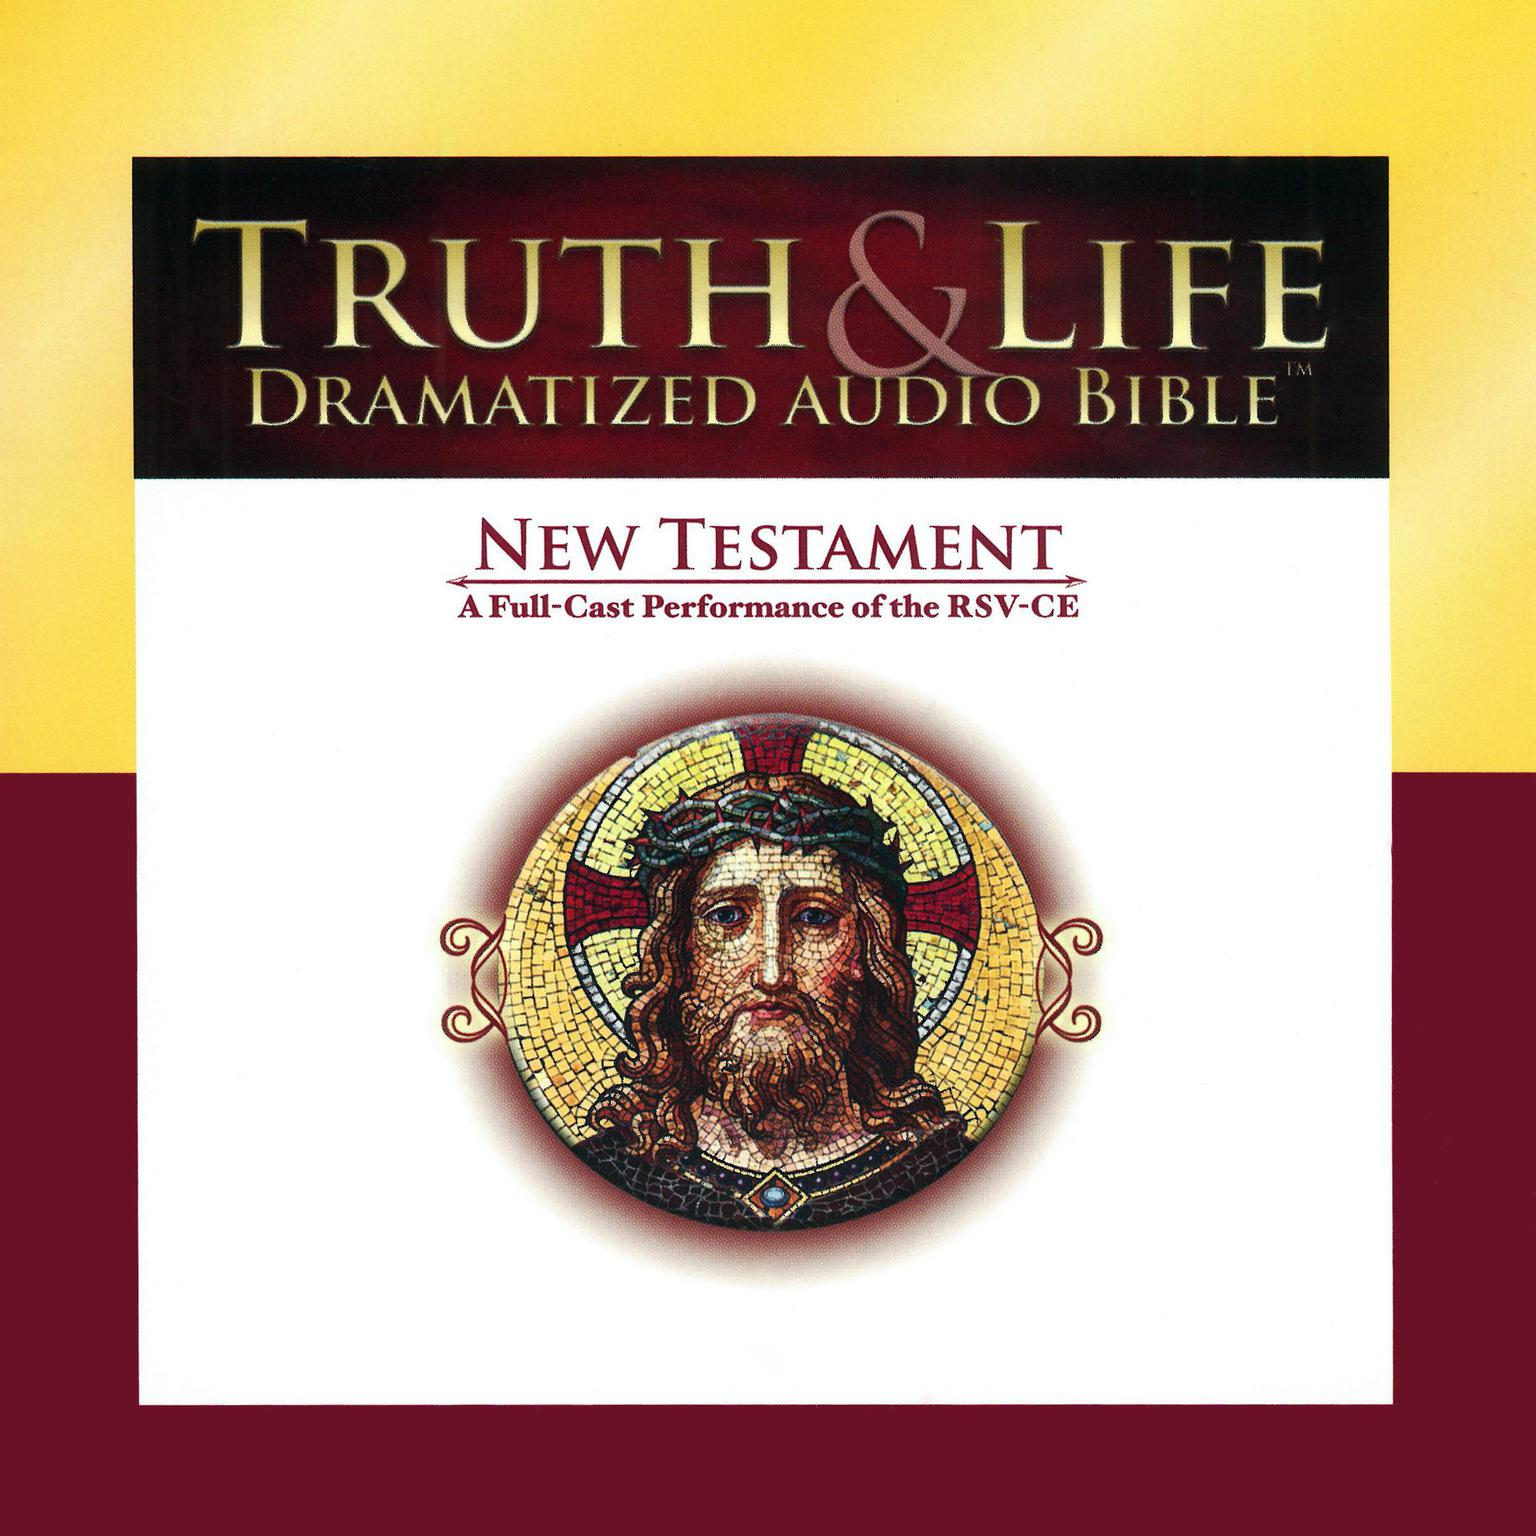 Truth & Life Dramatized Audio Bible: New Testament, A Full-Cast Performance of the RSV-CE Audiobook, by Carl Amari